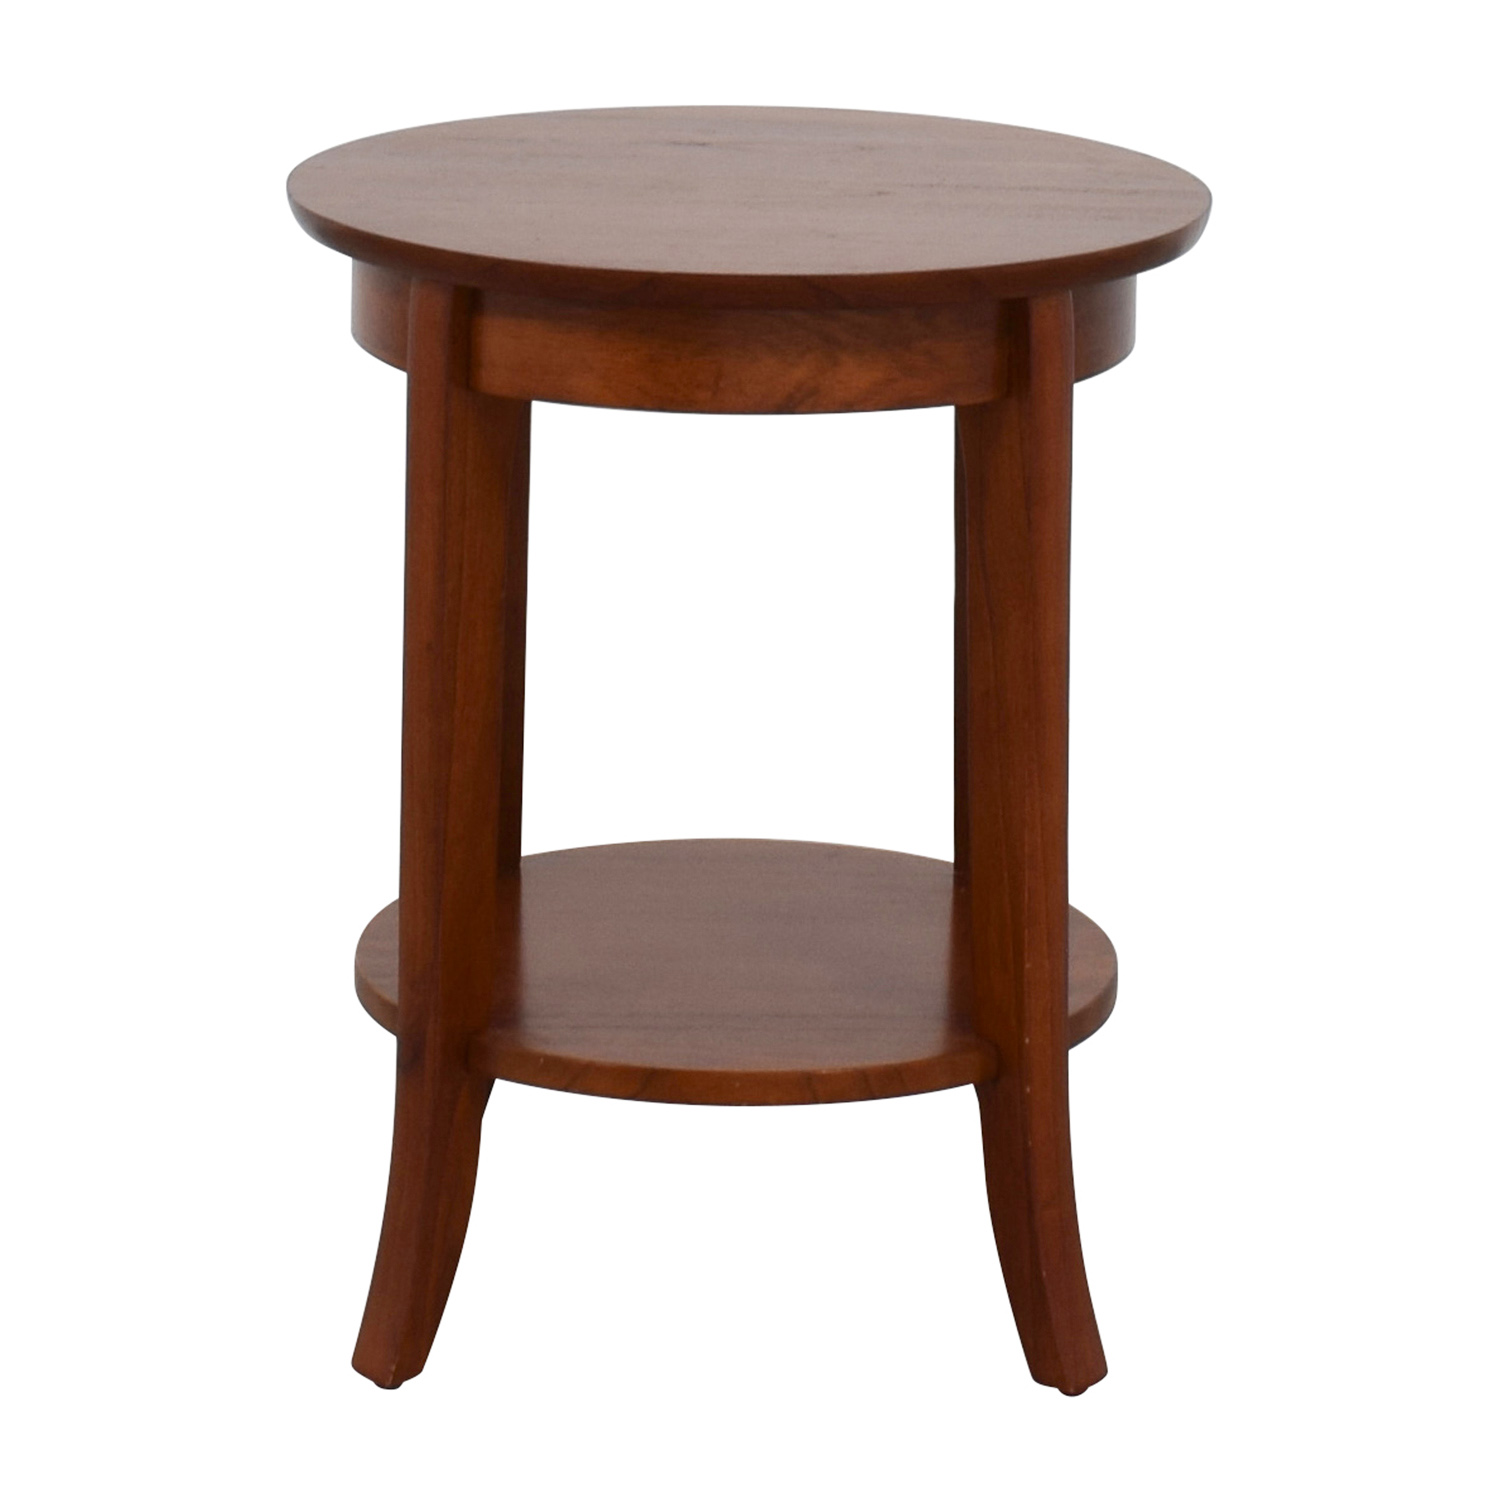 Pottery Barn Chloe Side Table / End Tables